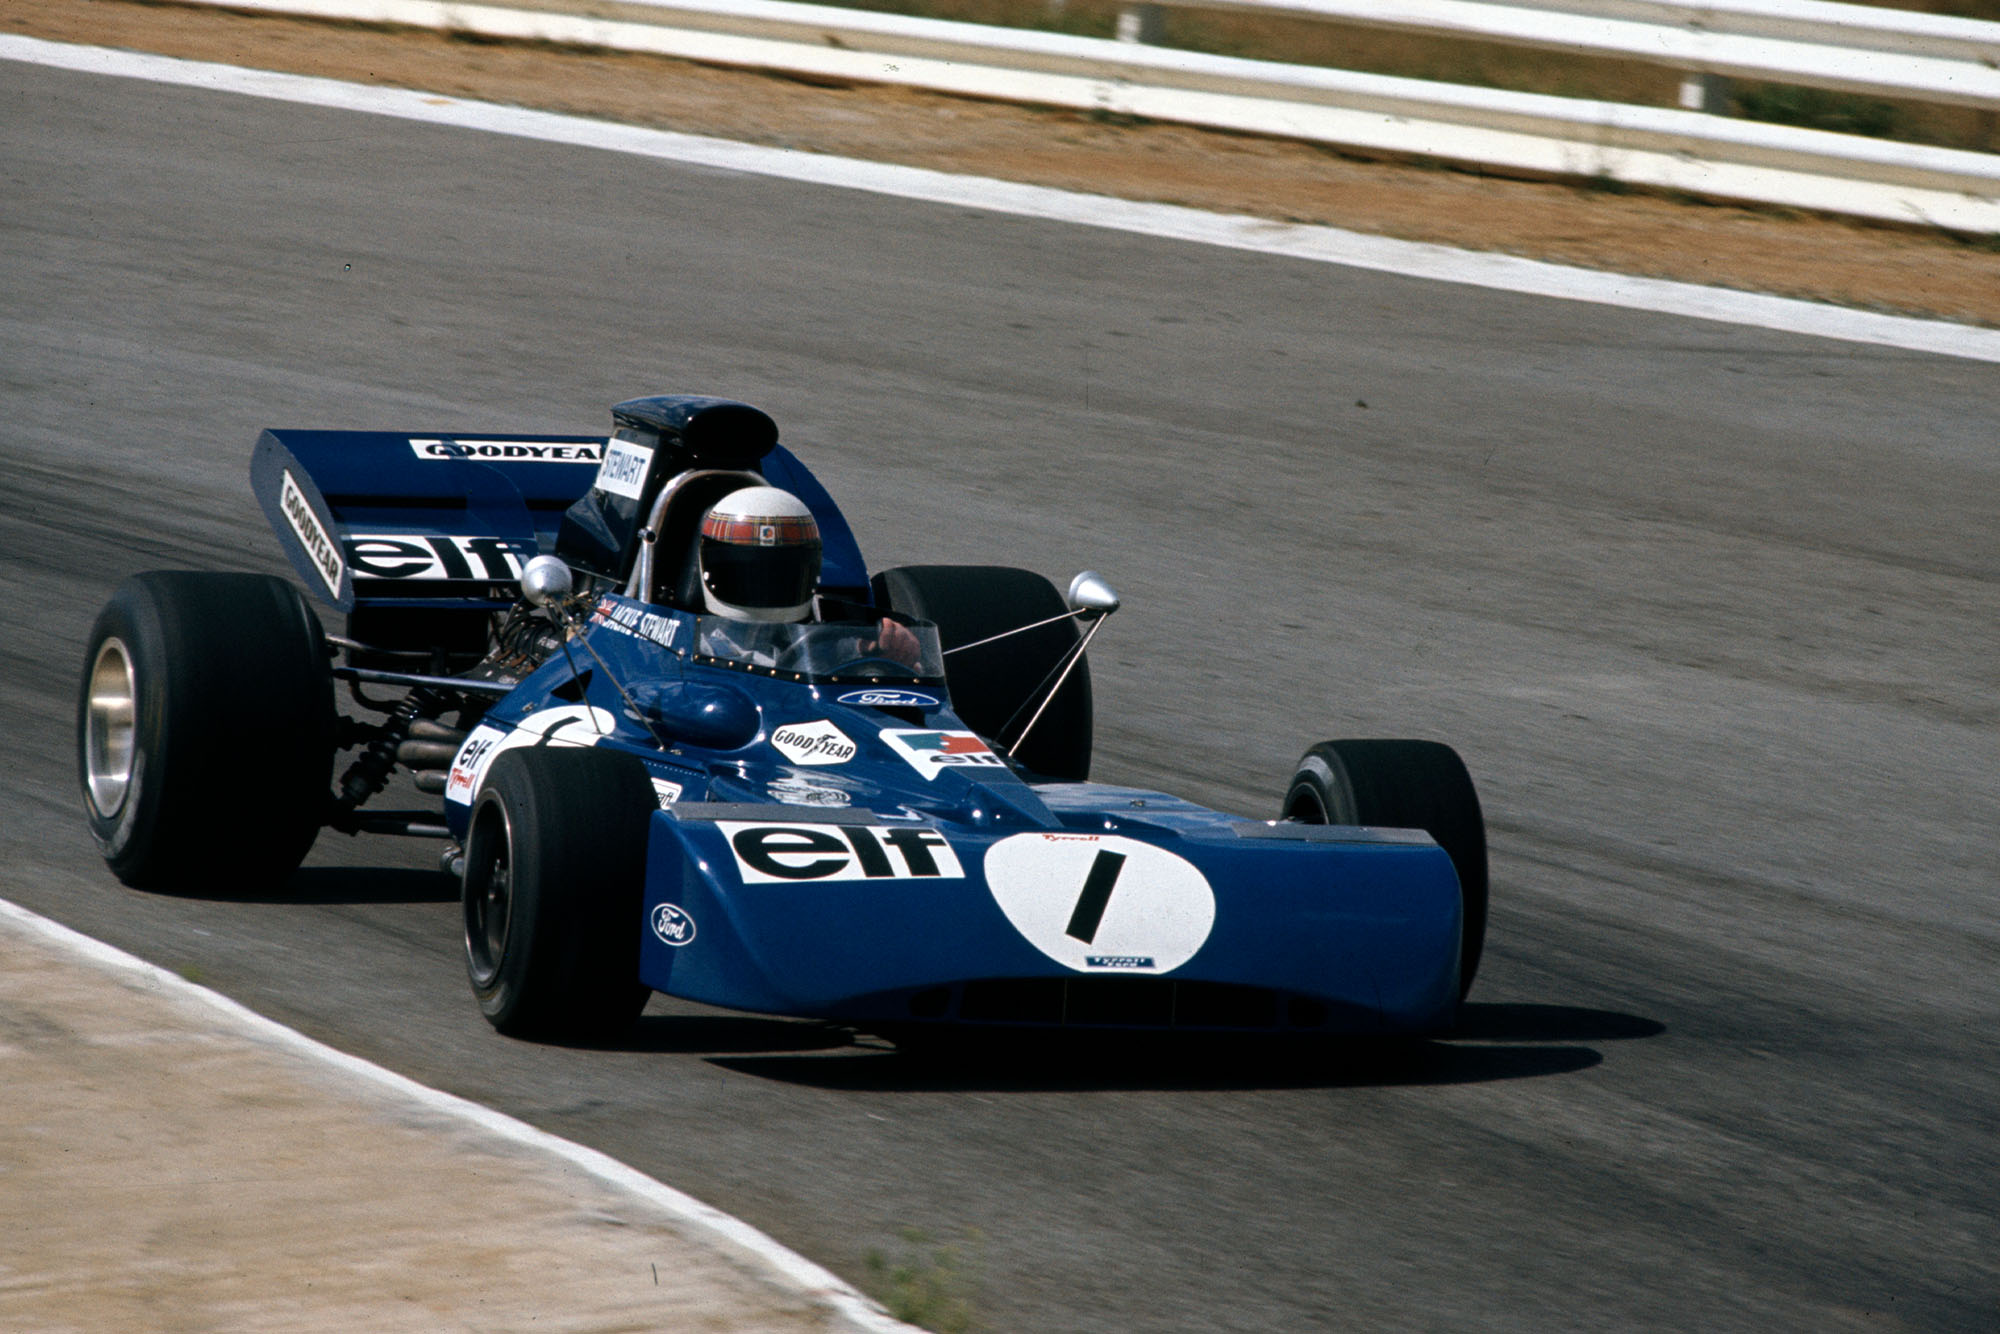 Jackie Stewart driving for Tyrrell at the 1972 South African Grand Prix.